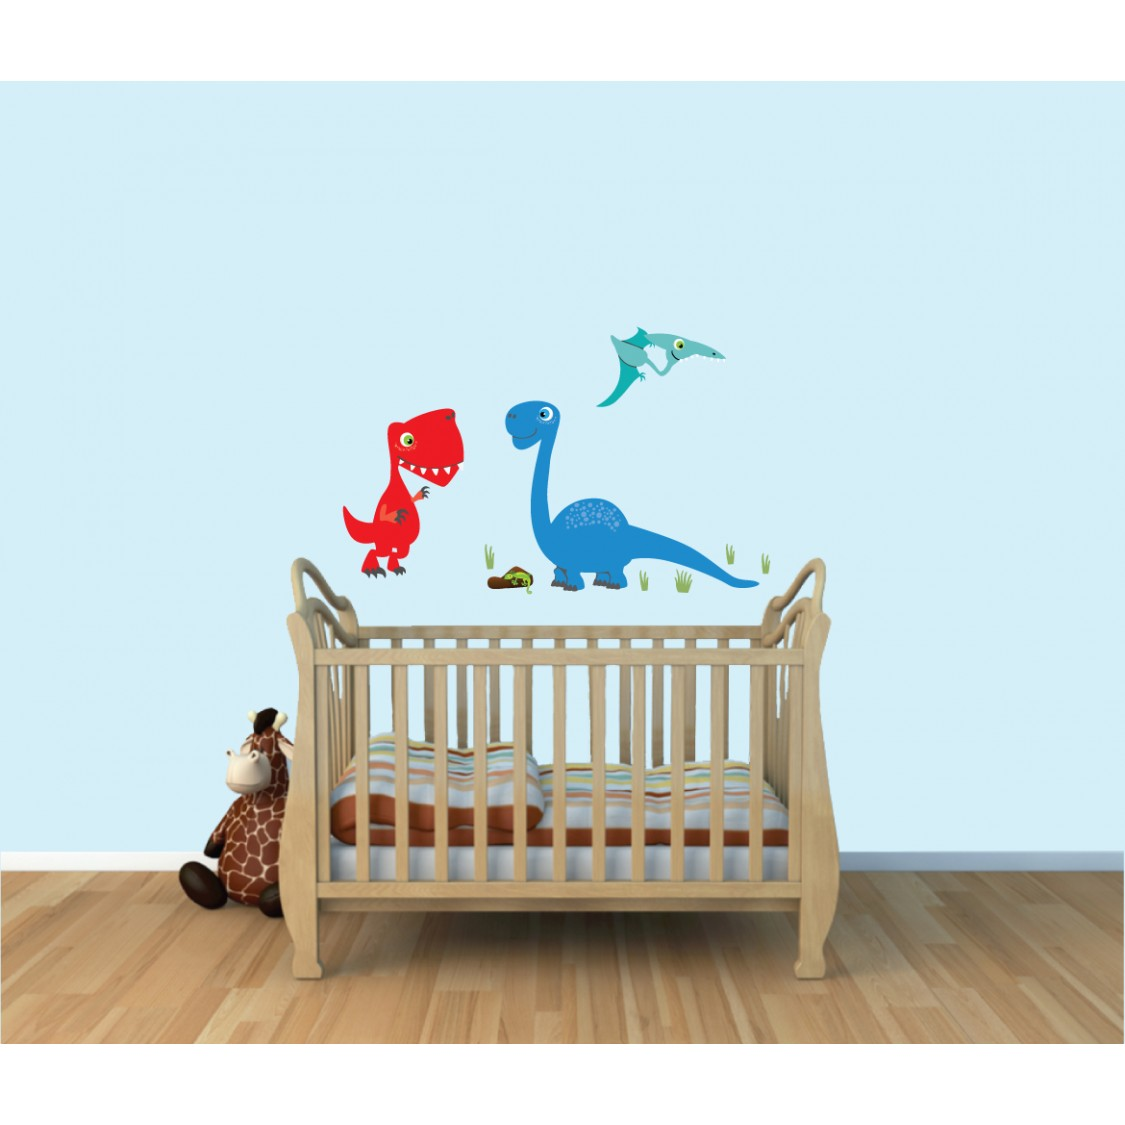 Colorful Removable Wall Decals Nursery & Dinosaur Wall Sticker